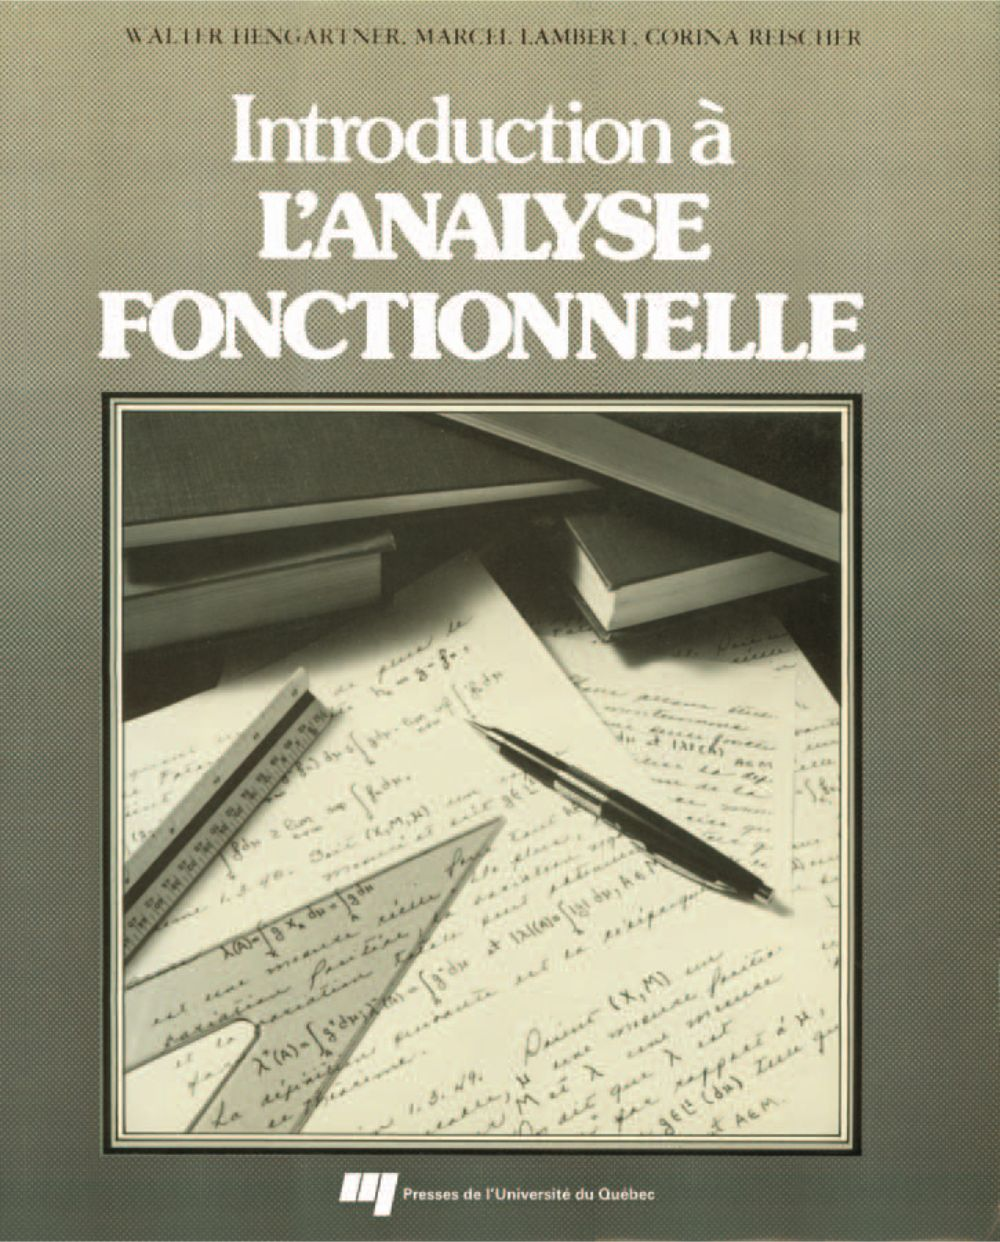 Introduction à l'analyse fonctionnelle